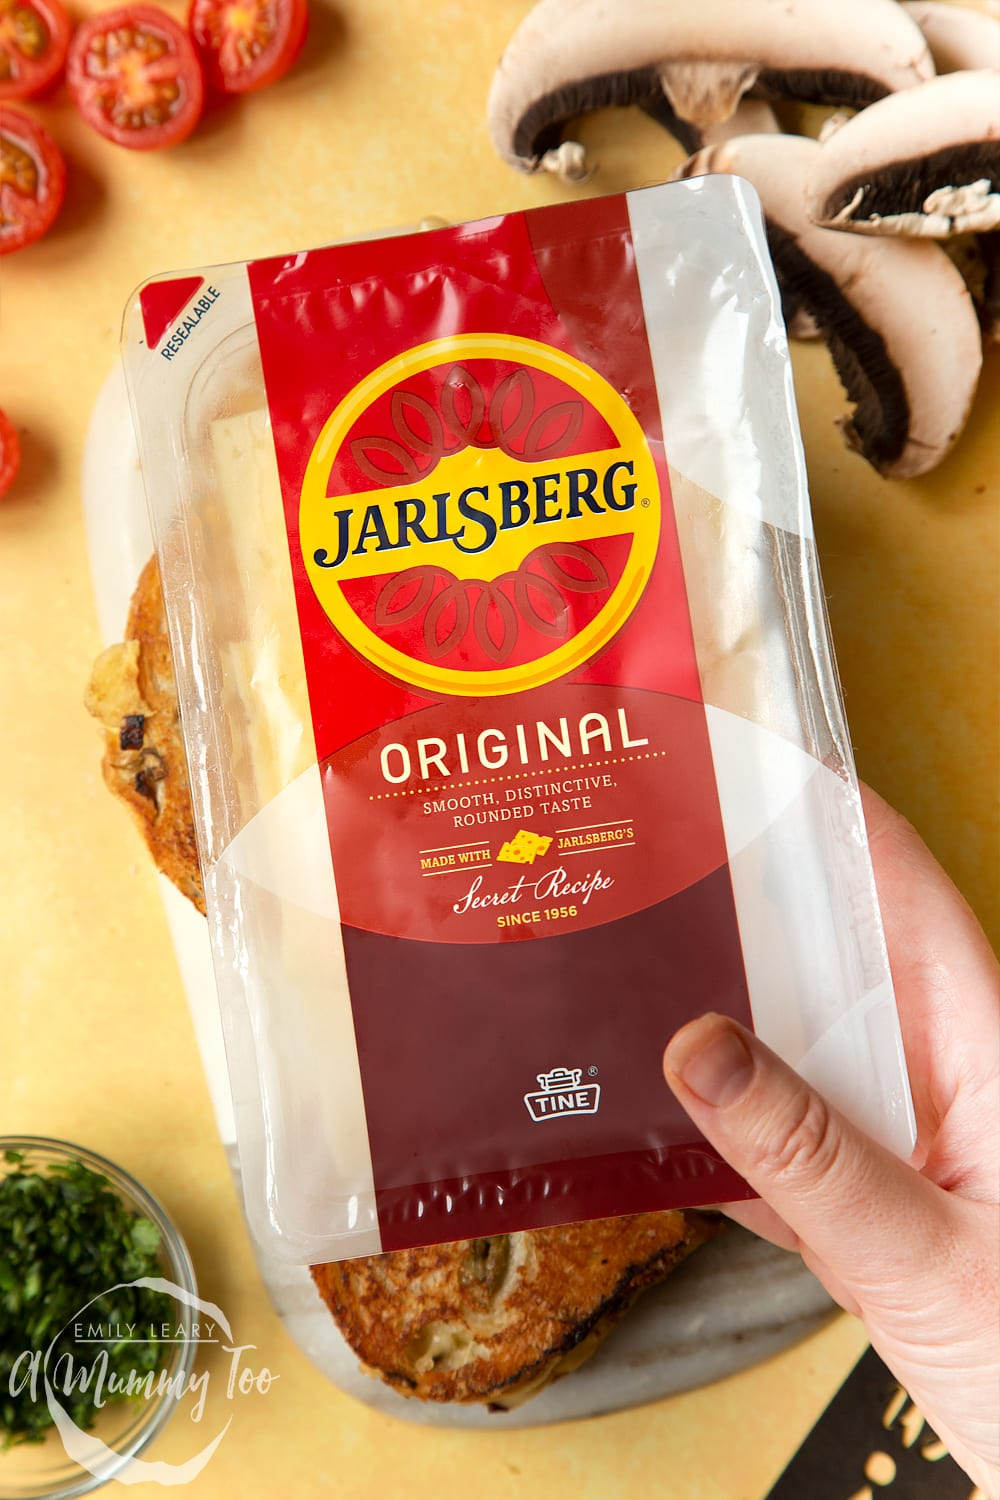 A packet of Jarlsberg cheese is being held up, two mushroom toasties are also on the table.